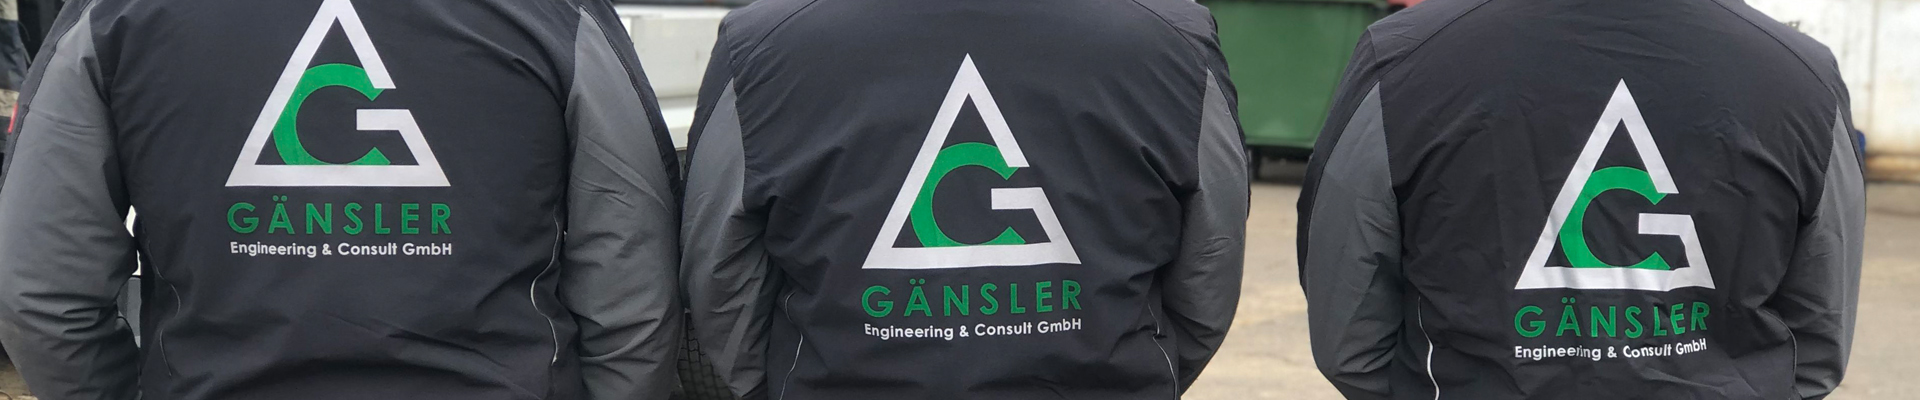 Gänsler Engineering & Consult GmbH